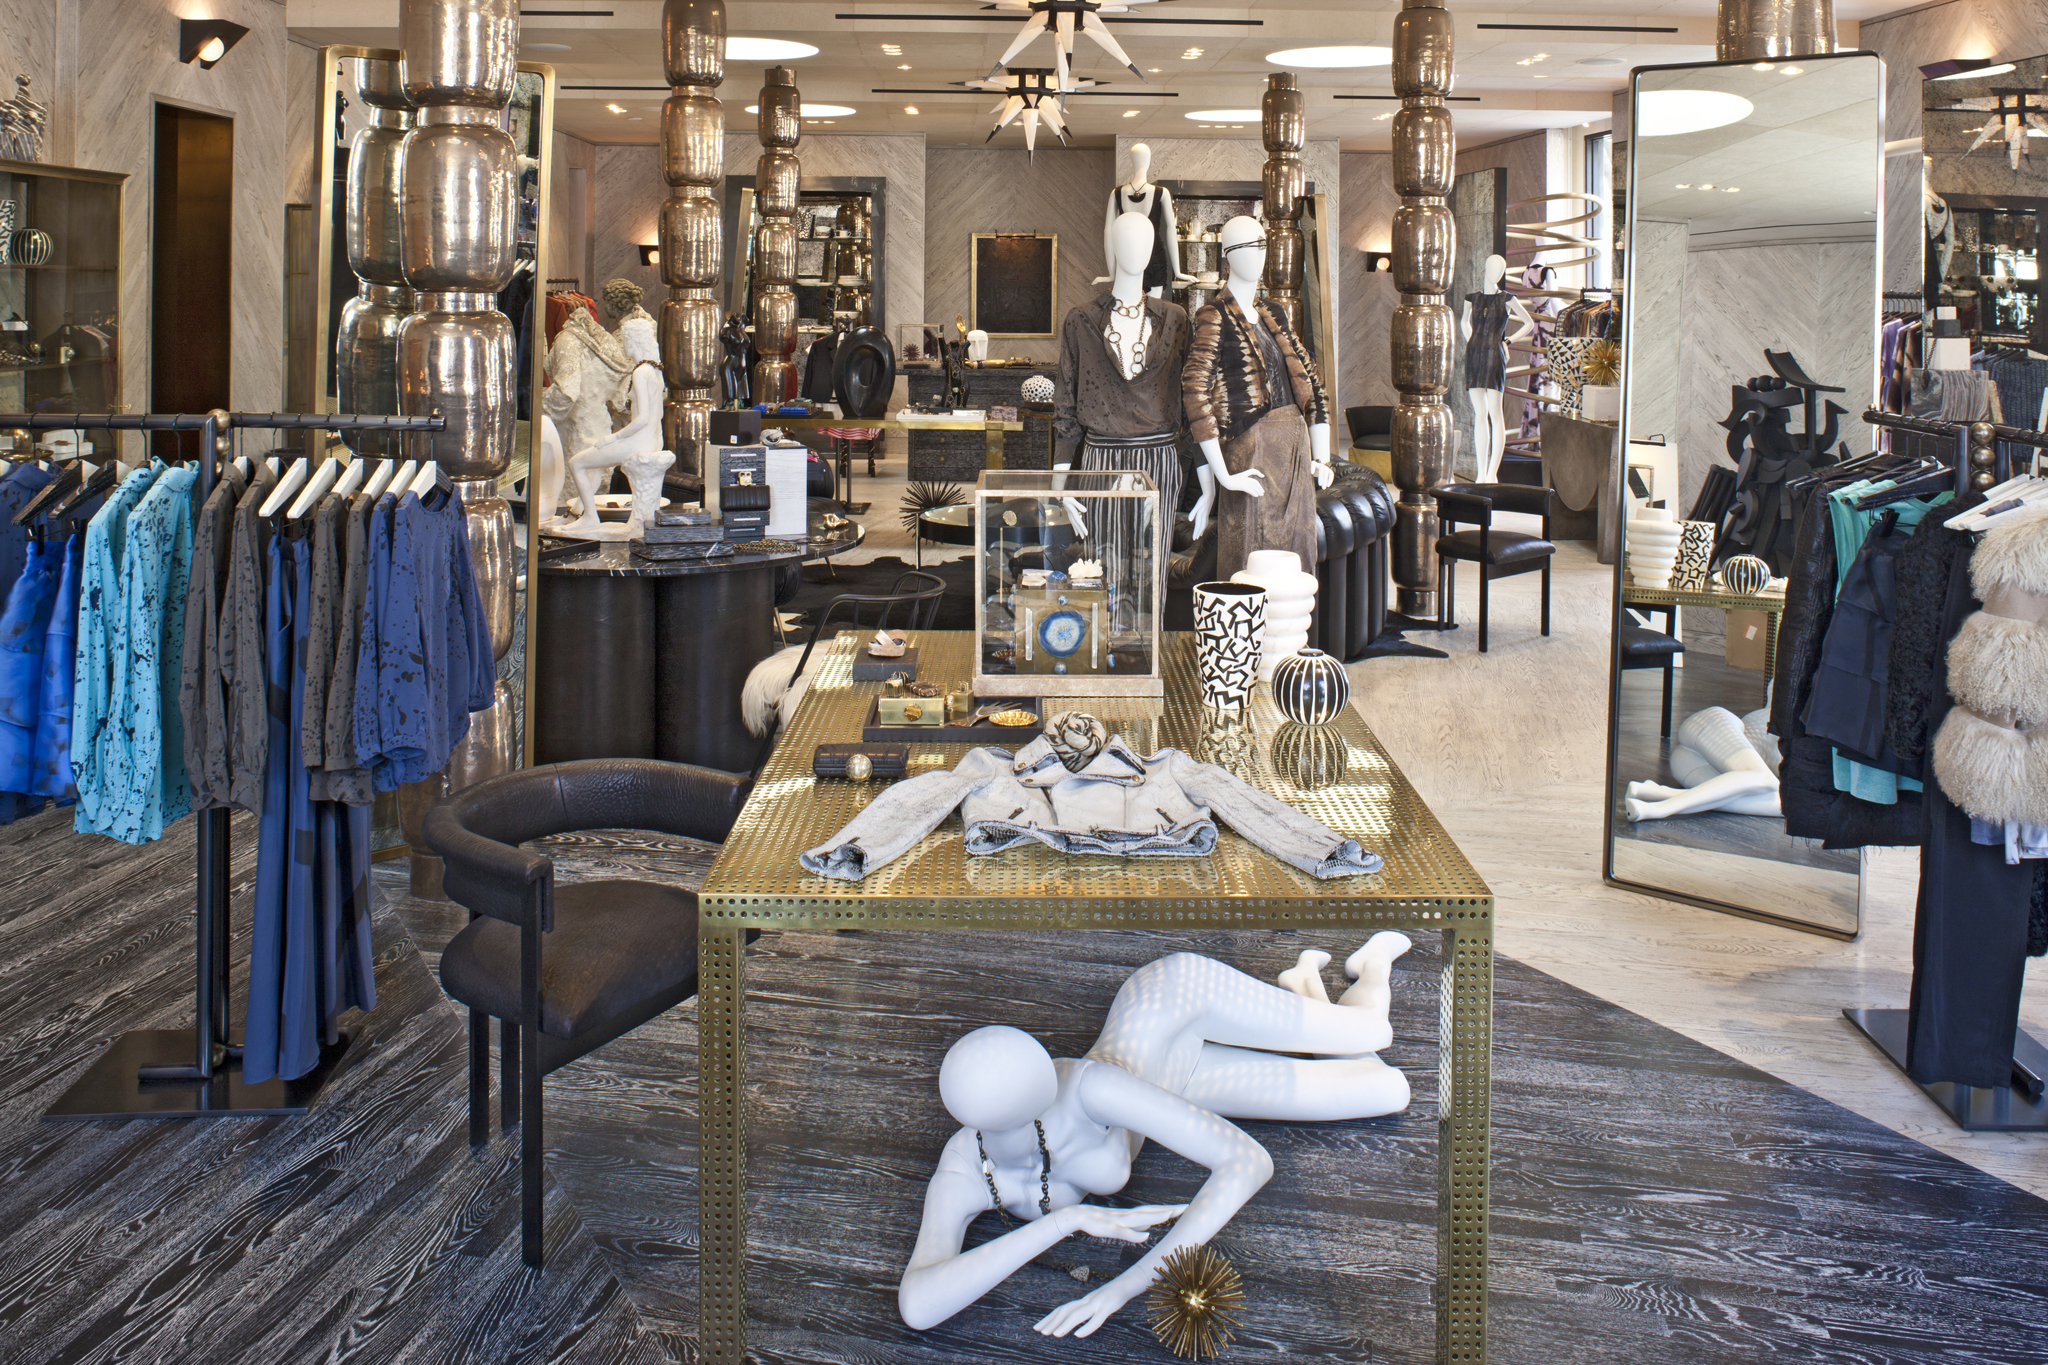 Kelly Wearstler. Best furniture stores and home decor shops in Los Angeles